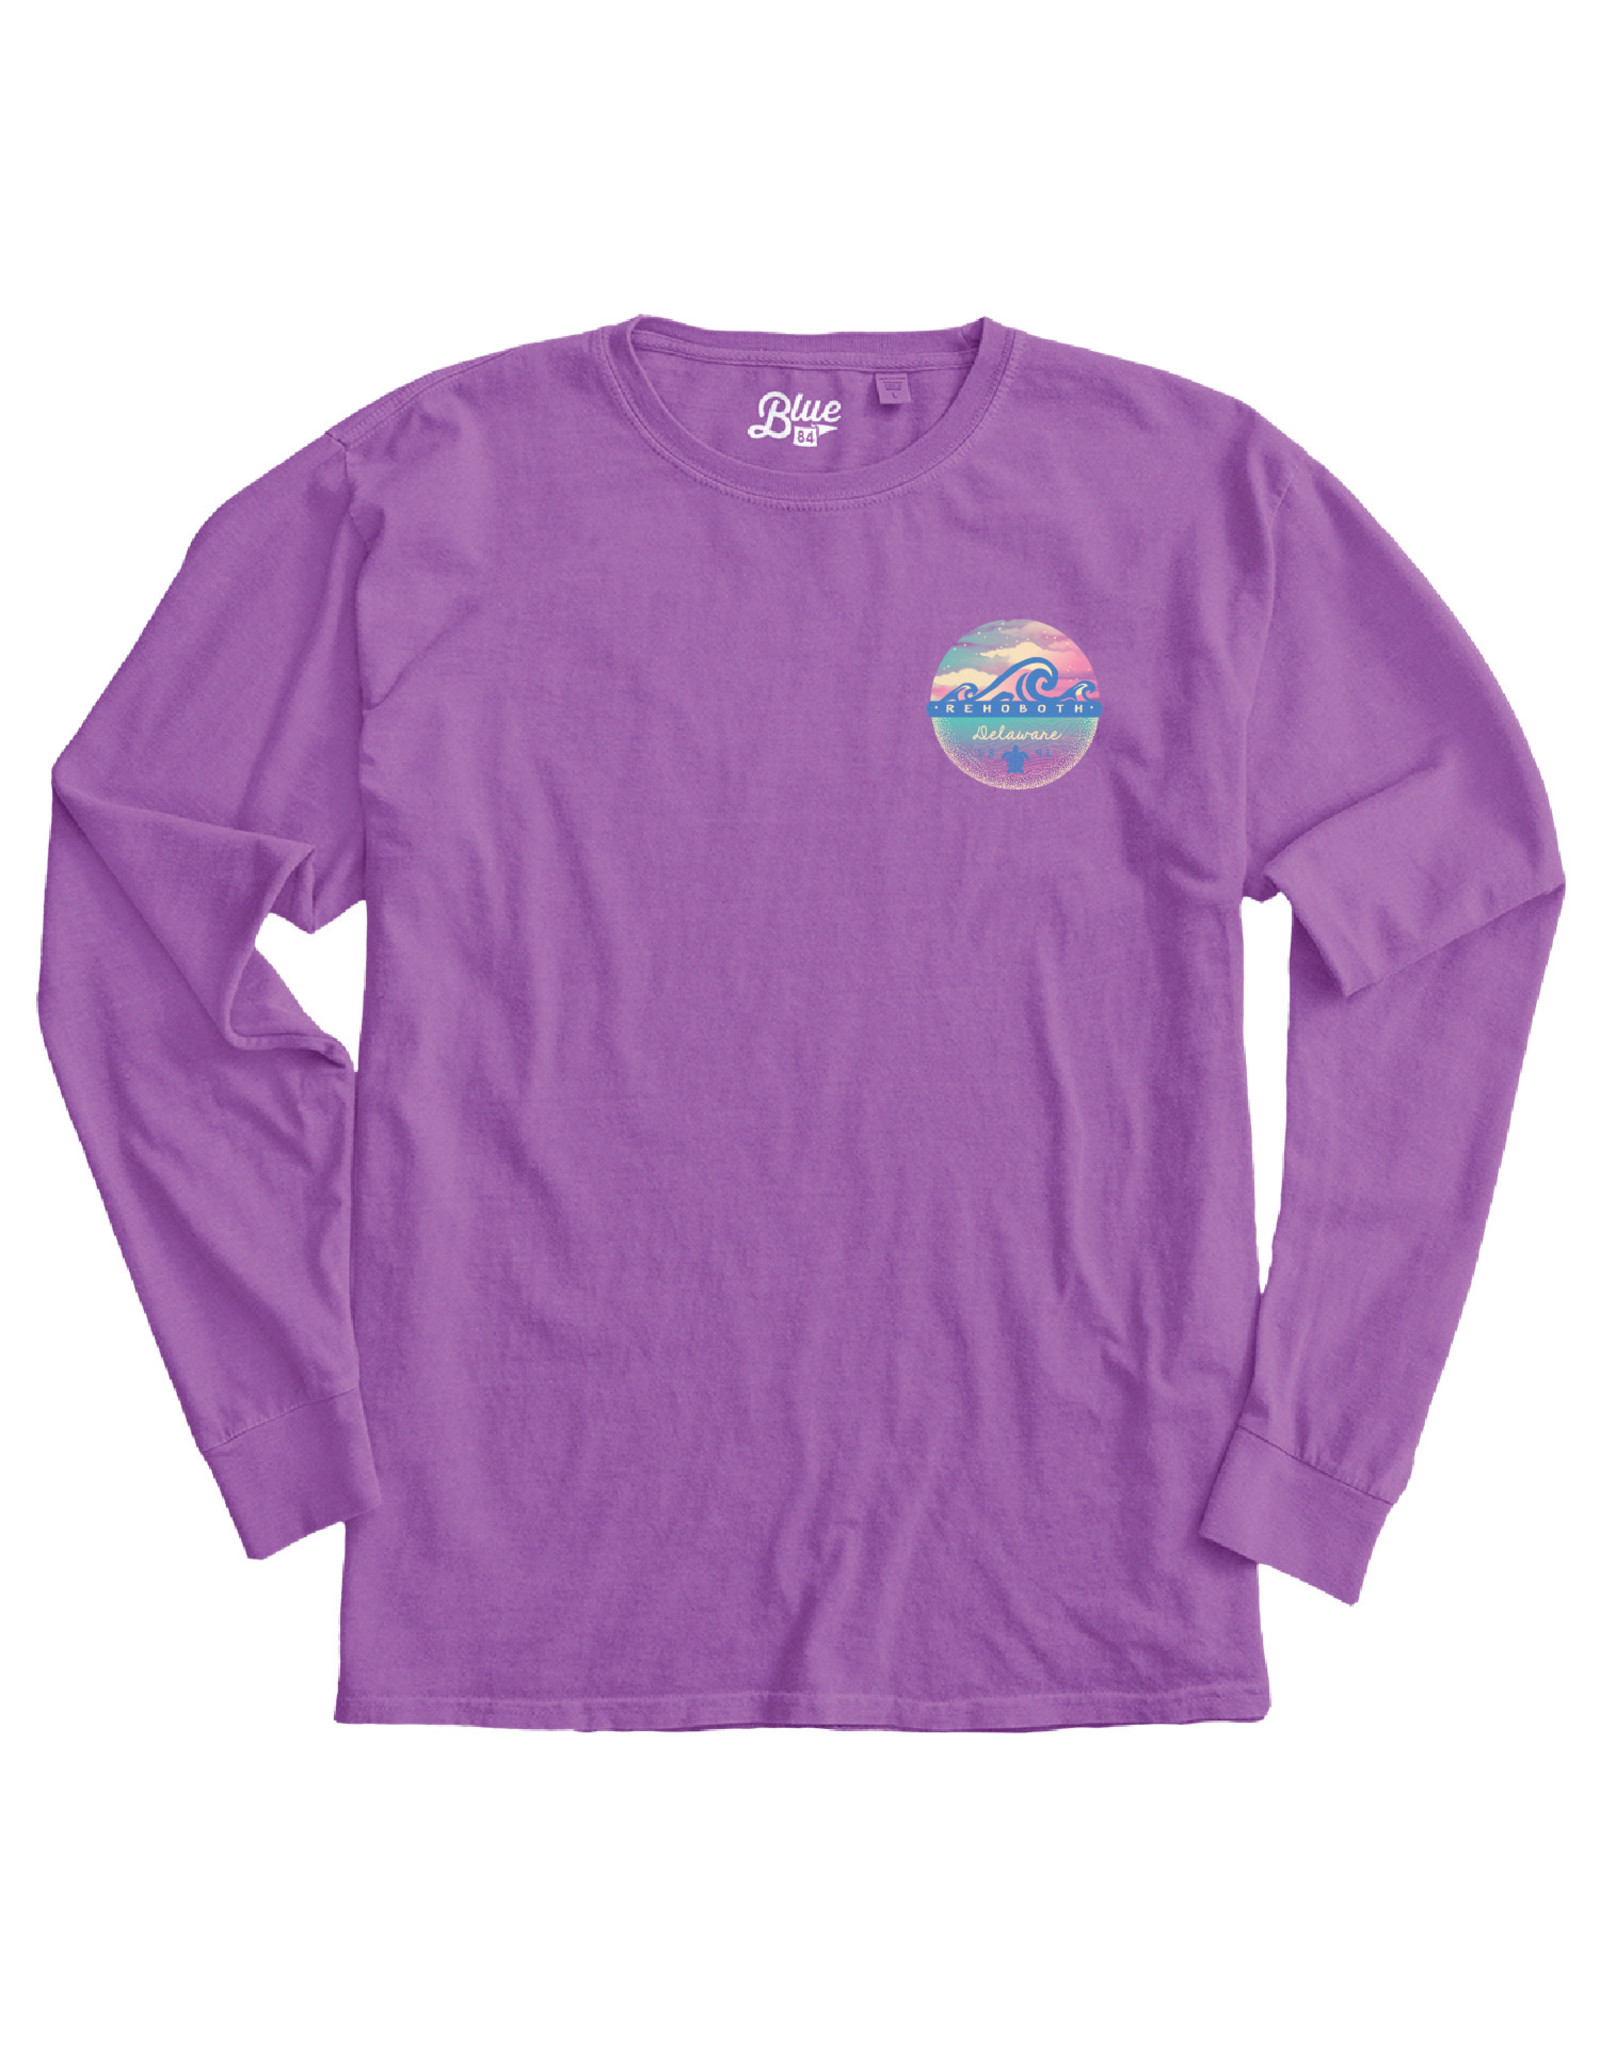 BLUE 84 MYTHIC WAVES LS TEE